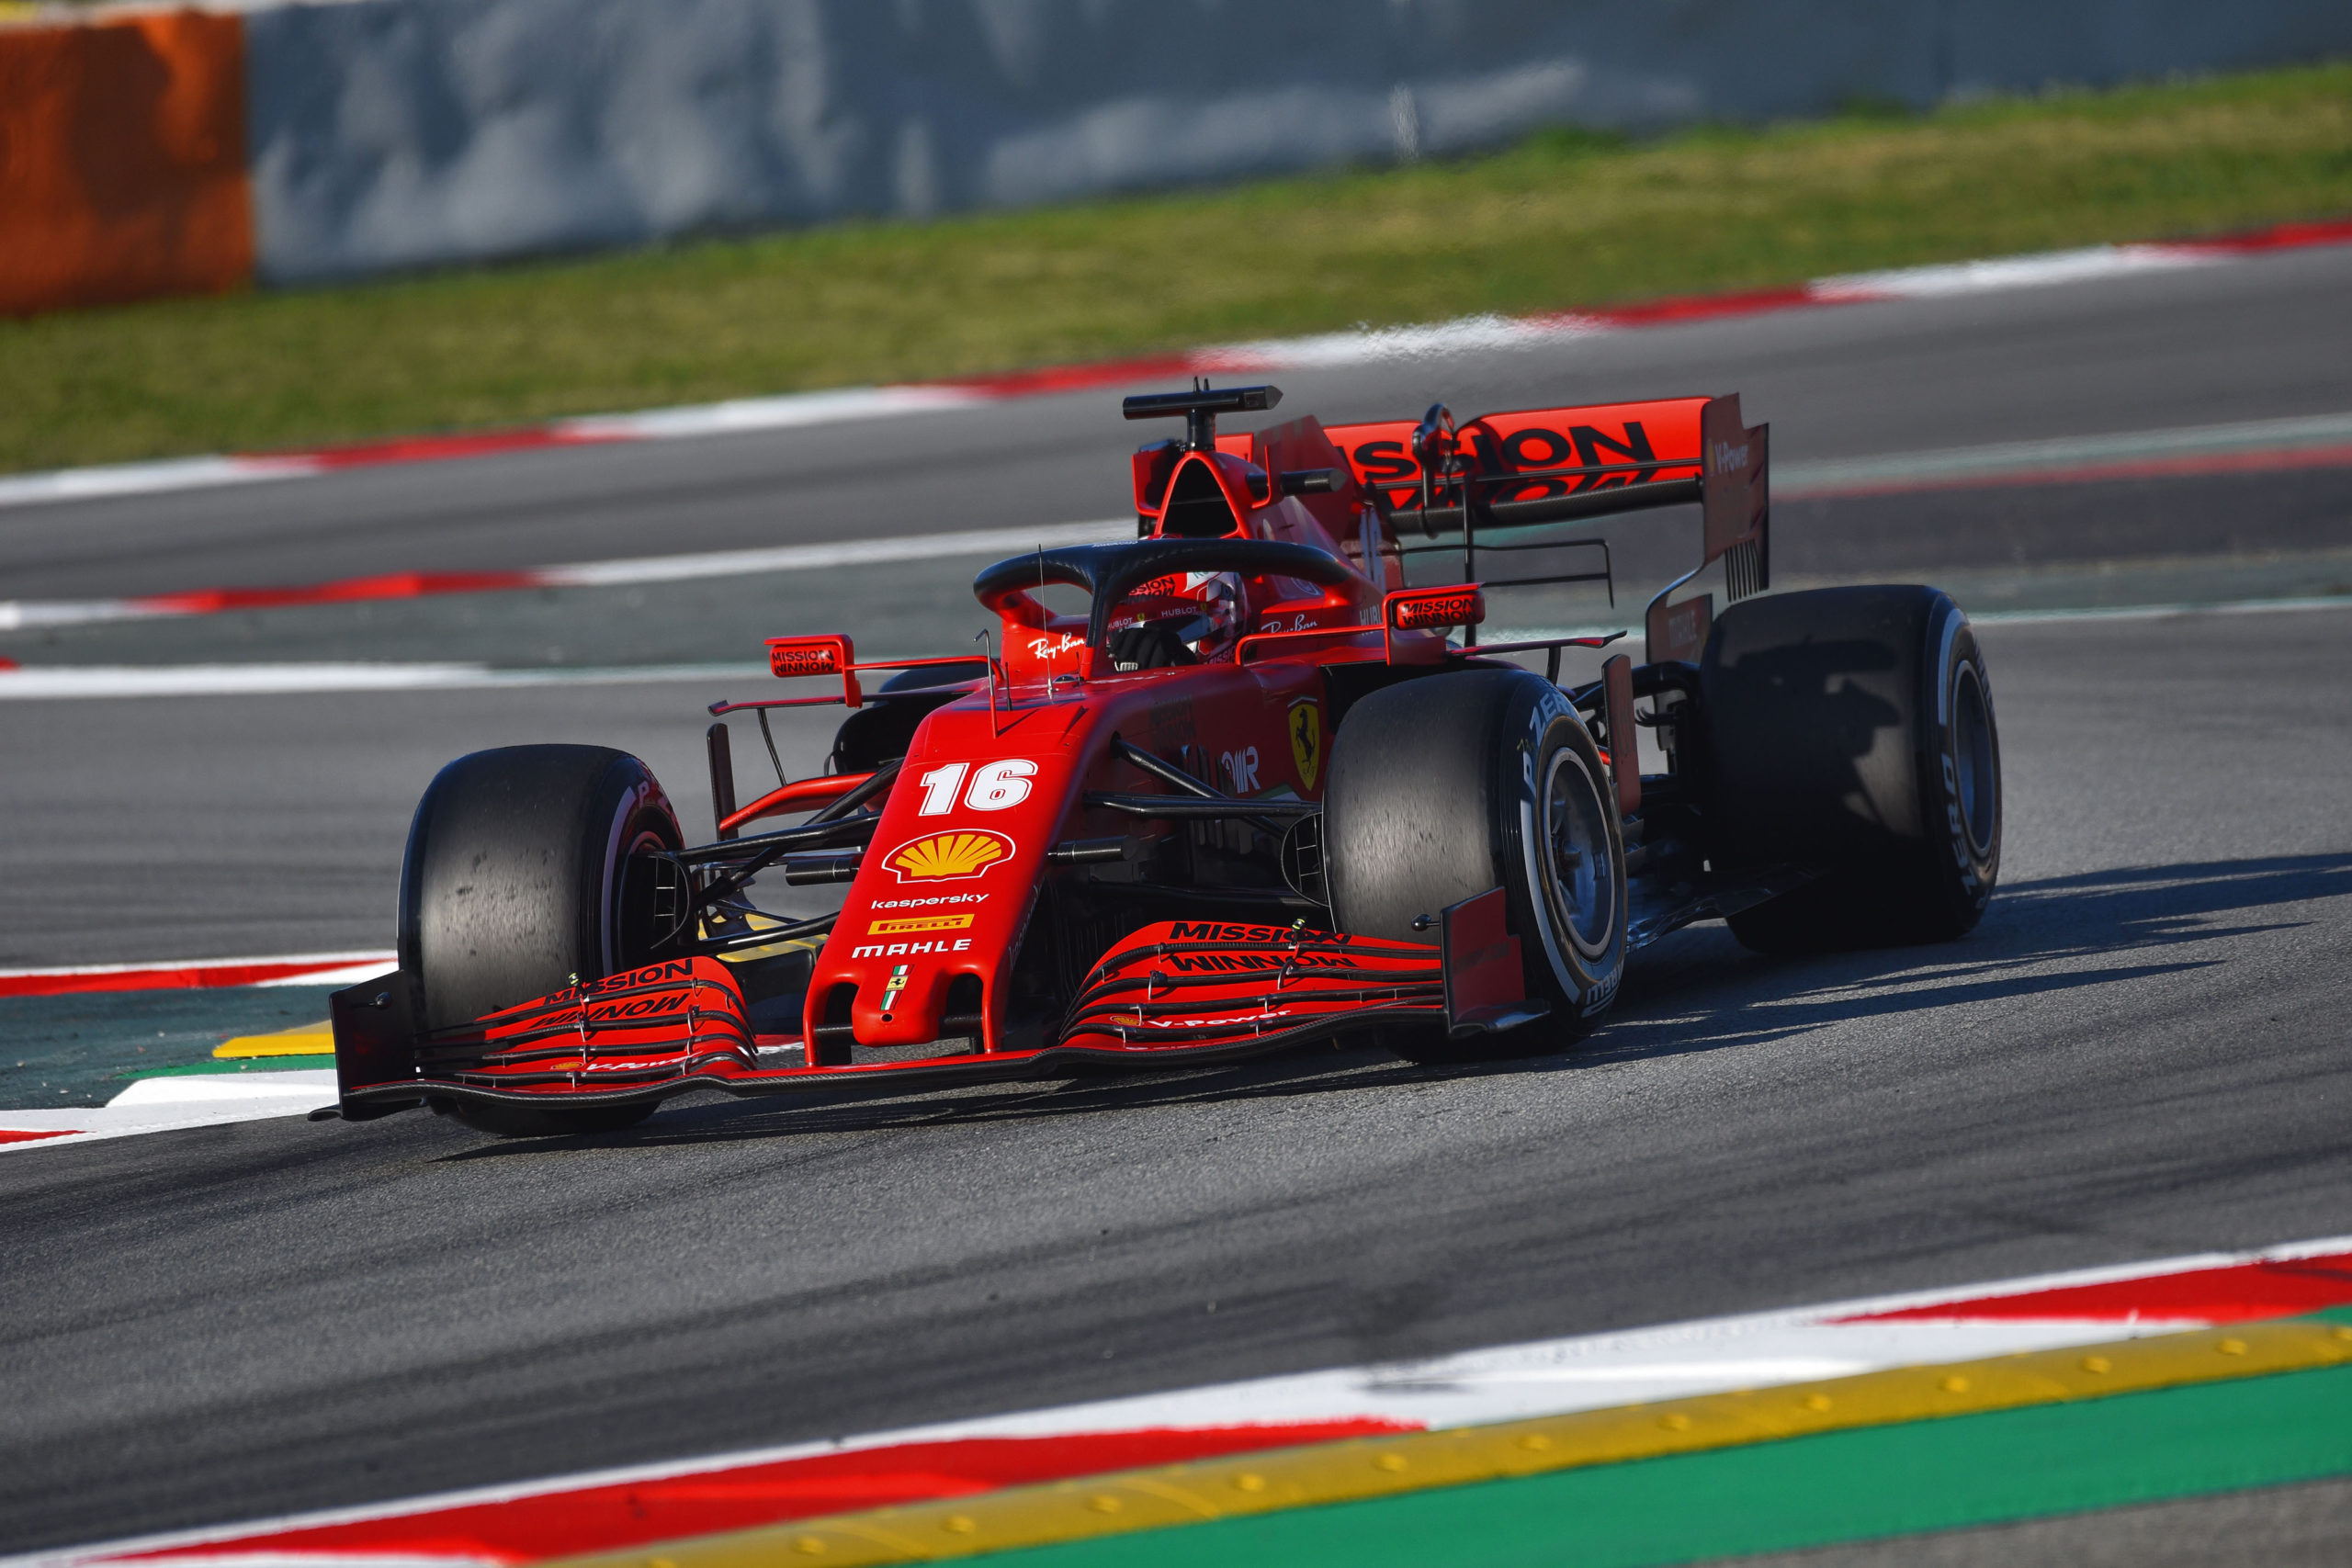 Bahrain and Vietnam Grand Prix Postponed To End of May 2020 - Newslibre